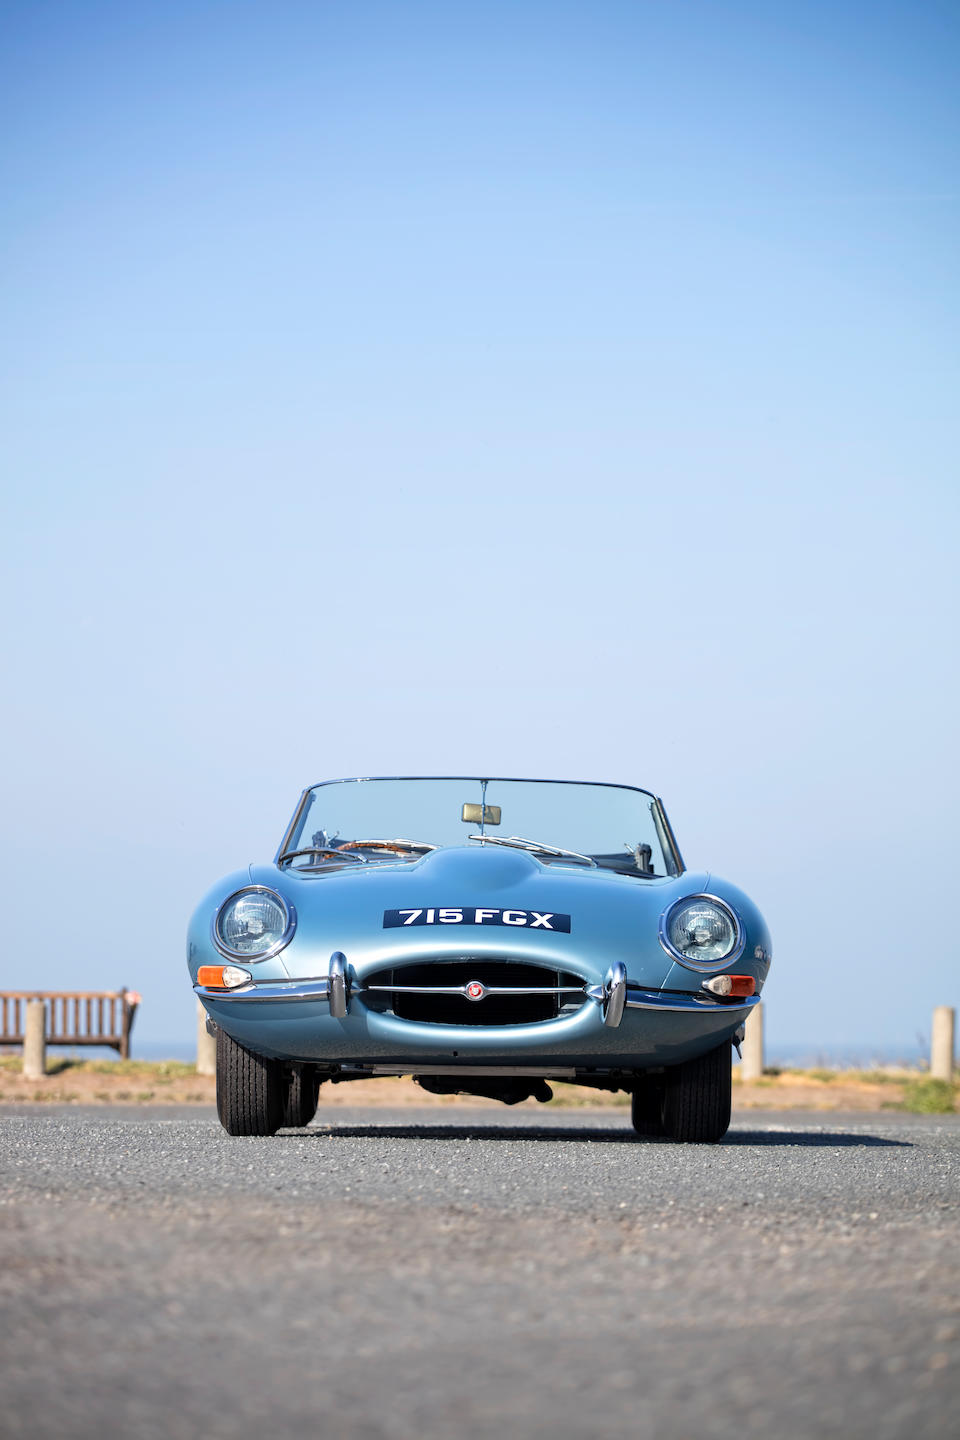 1961 Jaguar E-Type 'Series 1' 3.8-Litre 'Flat Floor' Roadster  Chassis no. 850164